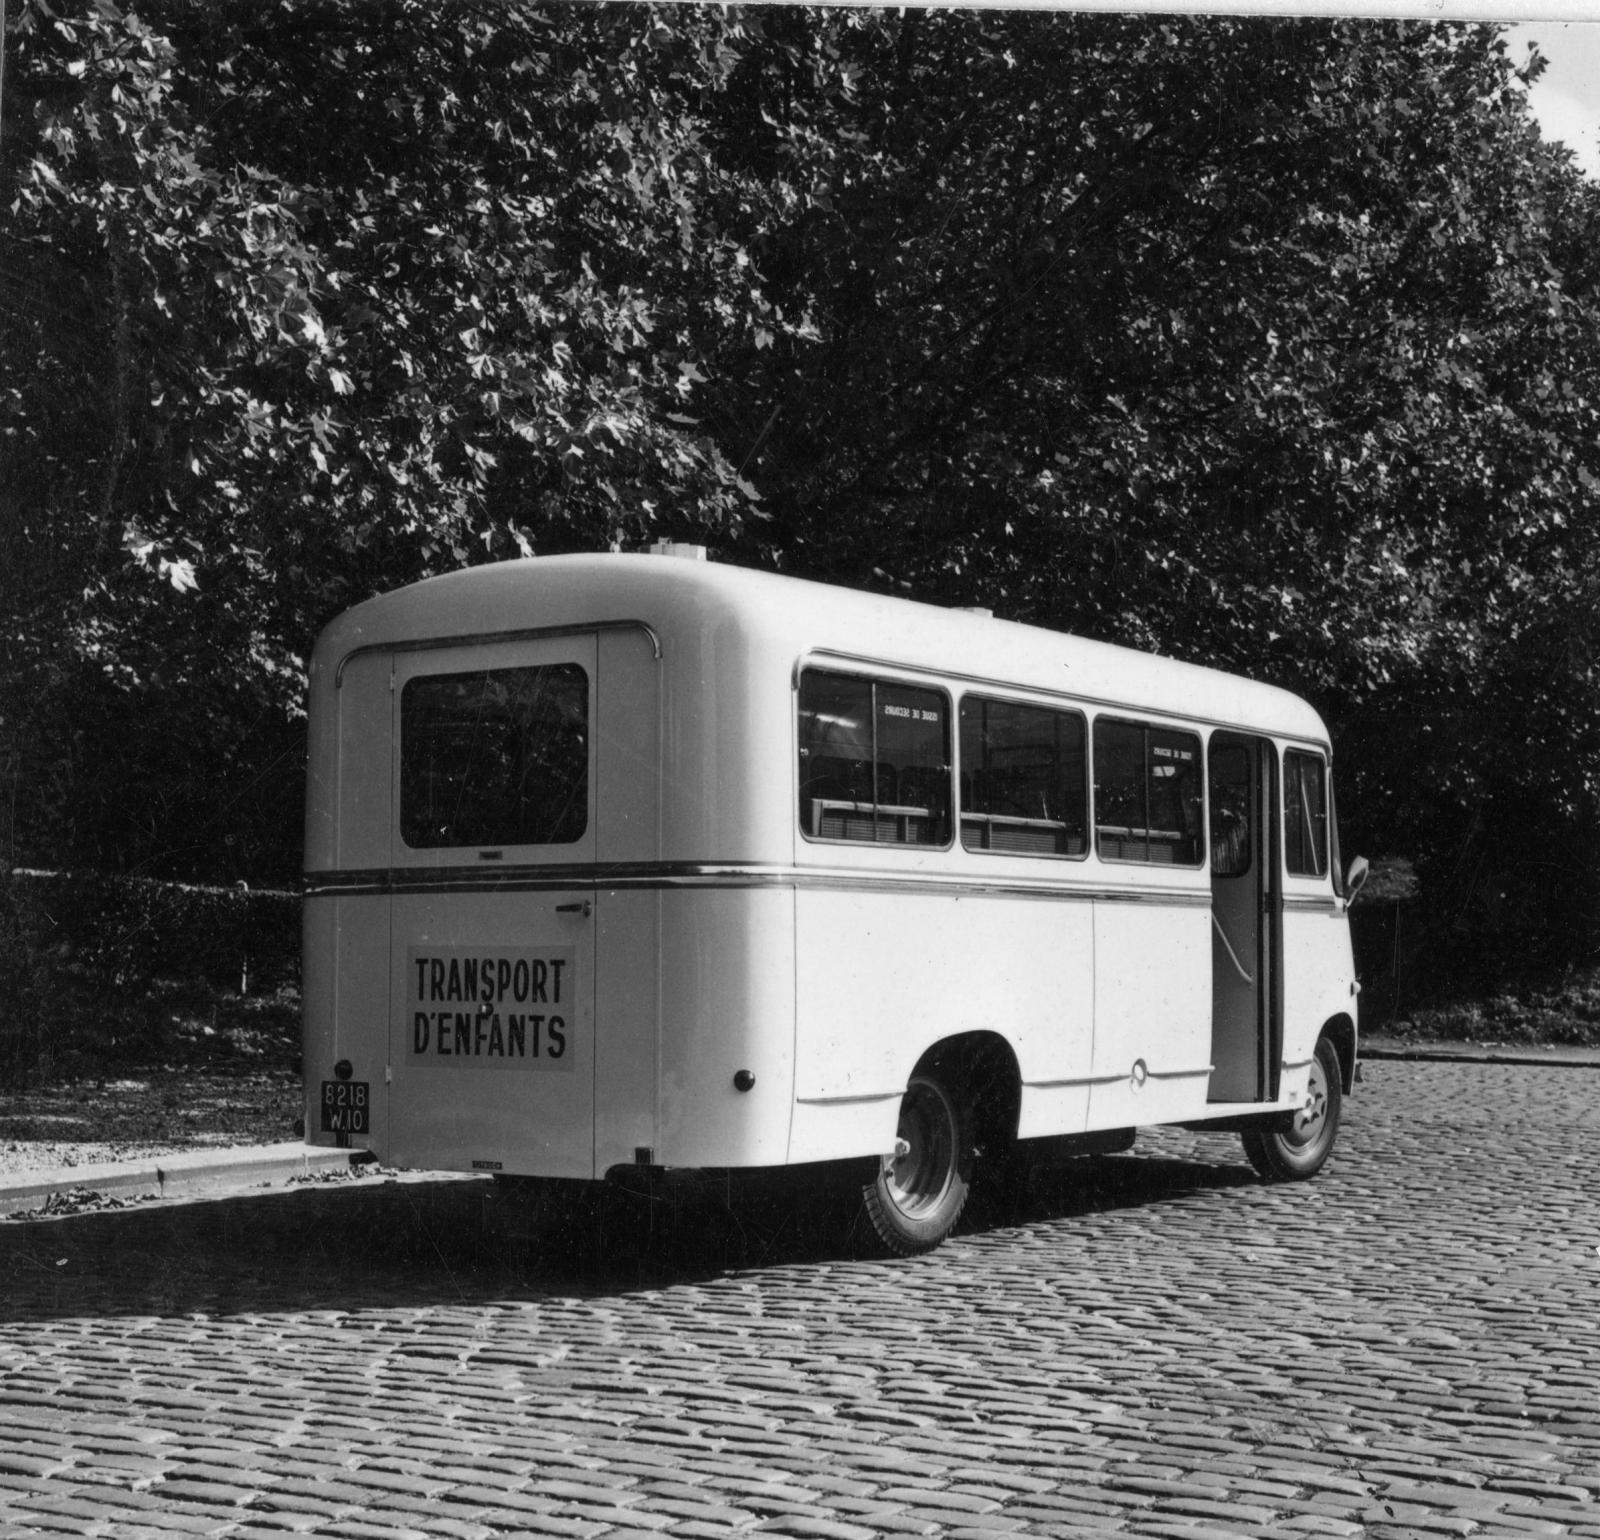 Citroën mini bus to transport children